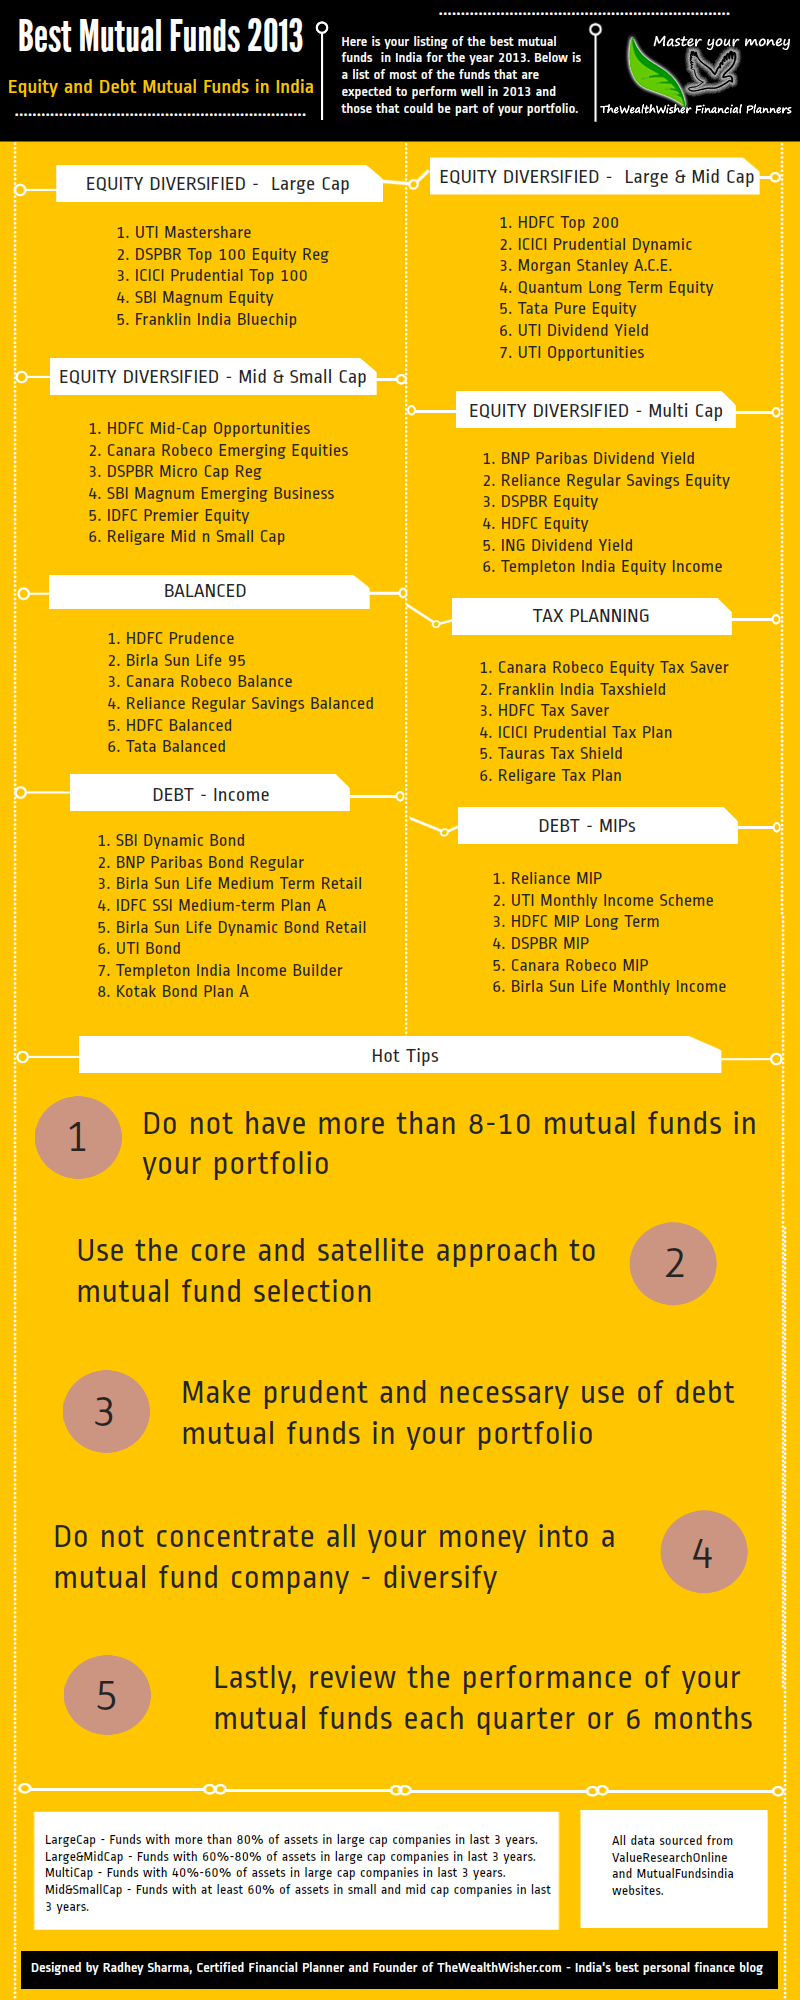 Best Mutual Funds Of 2013 Infographic Mutual Fund India Investing Money Investing